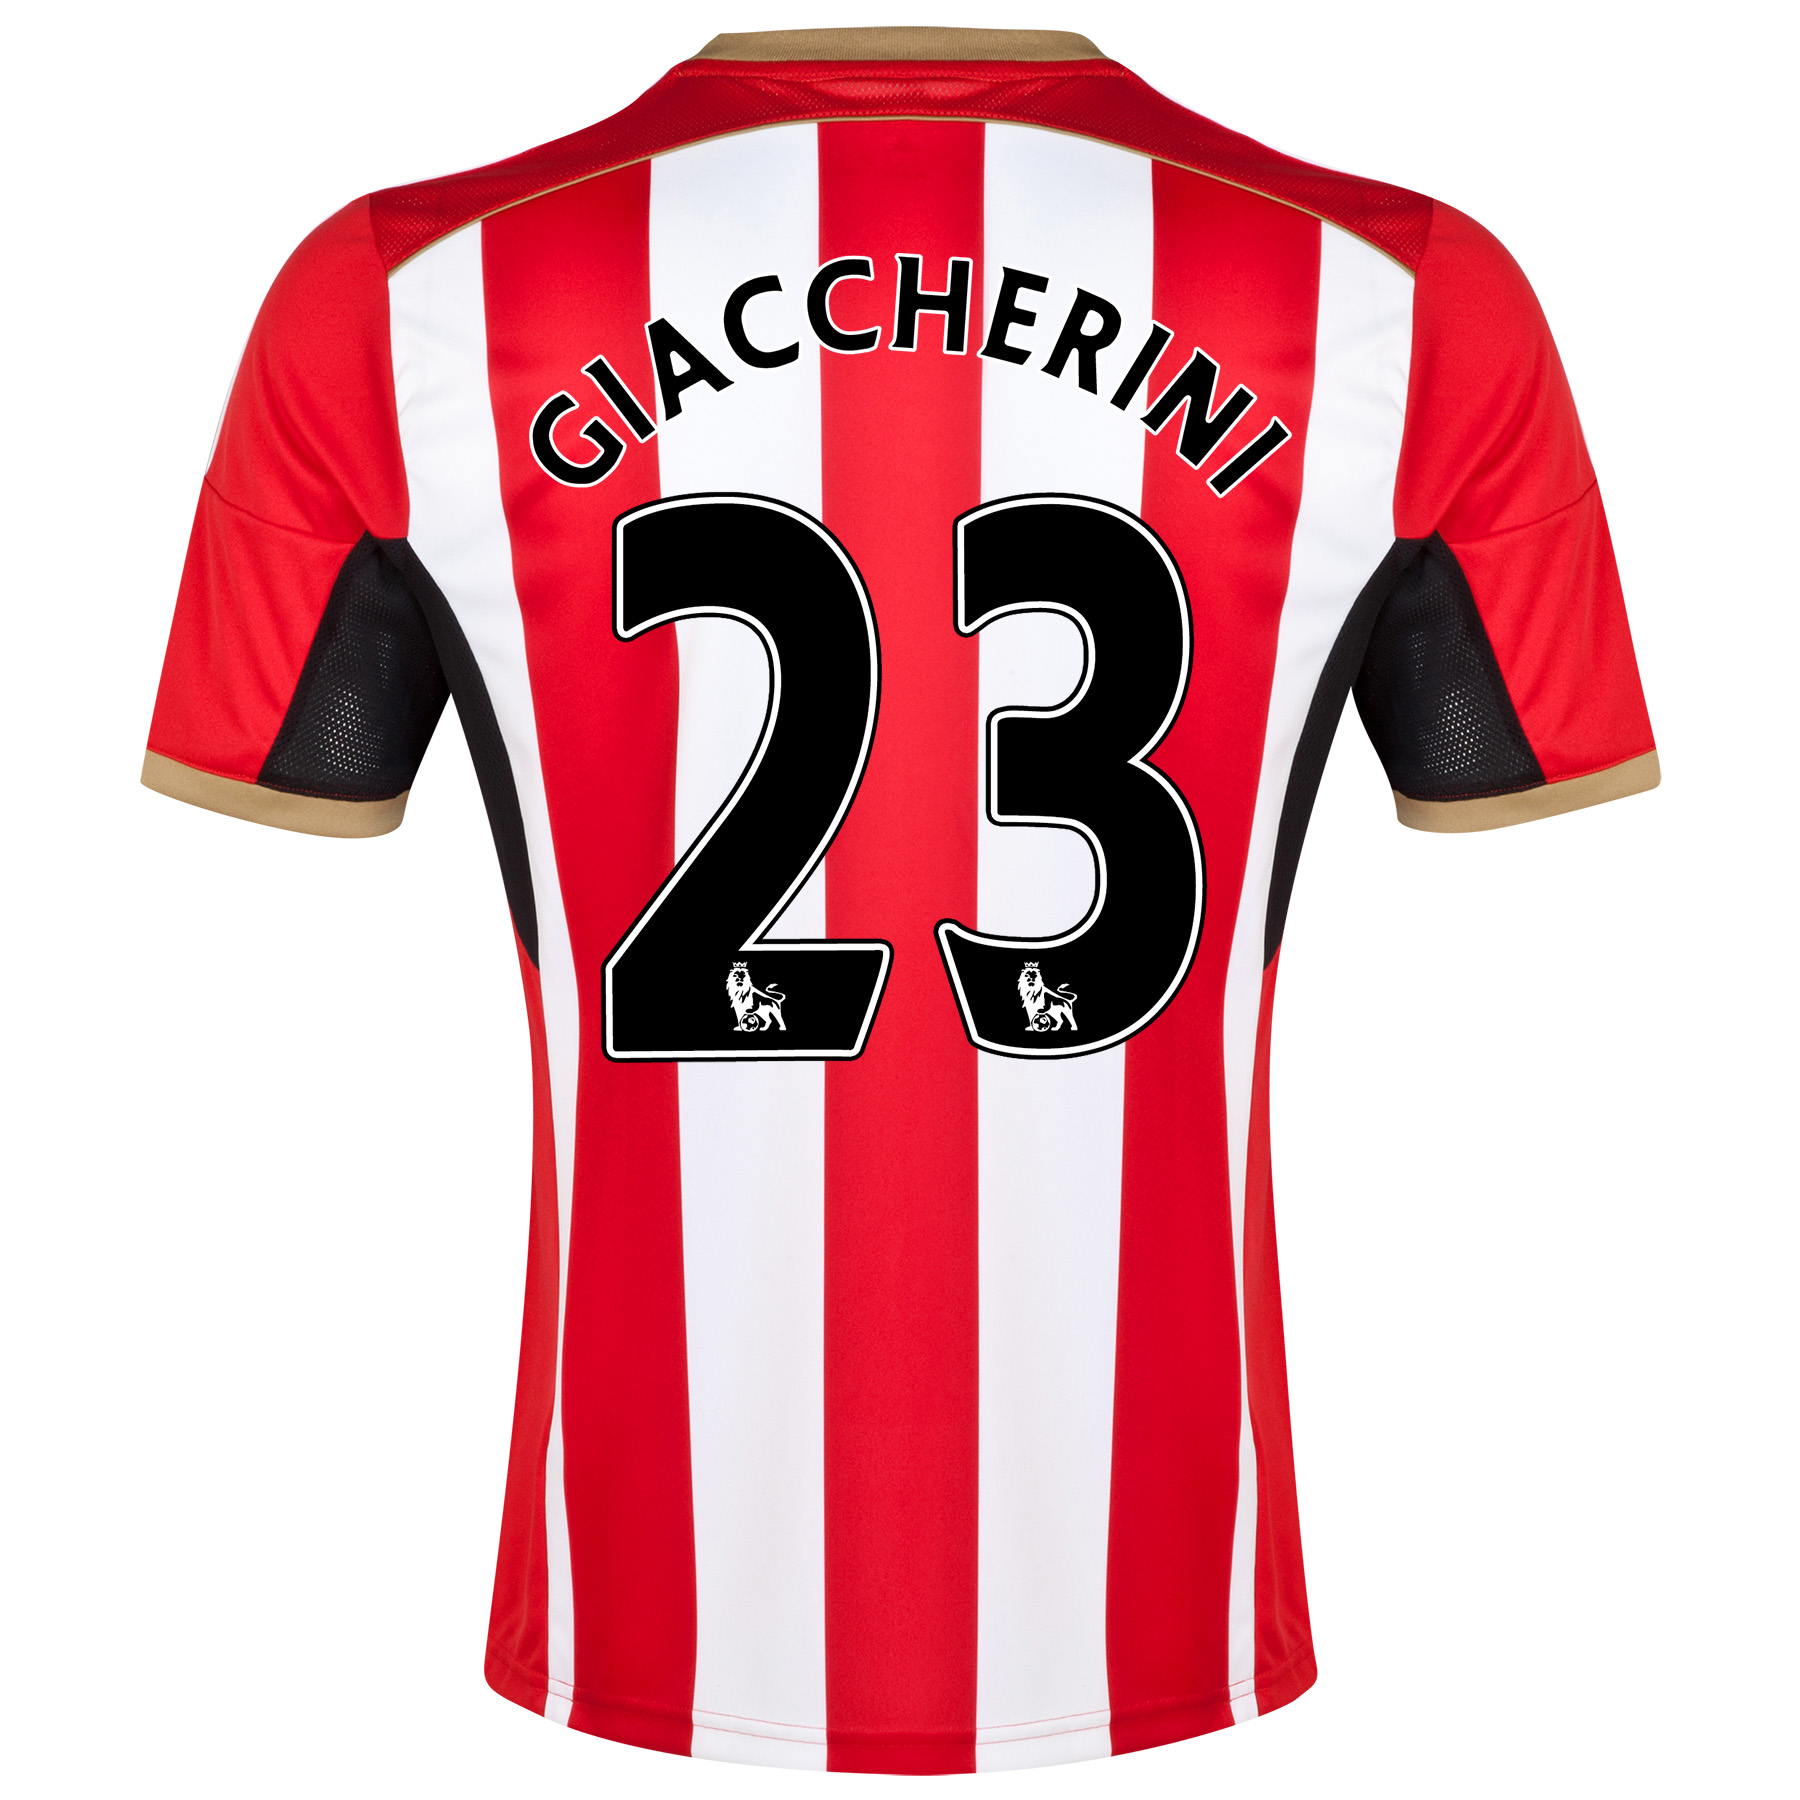 Sunderland Home Shirt 2014/15 - Junior Red with Giaccherini 23 printing